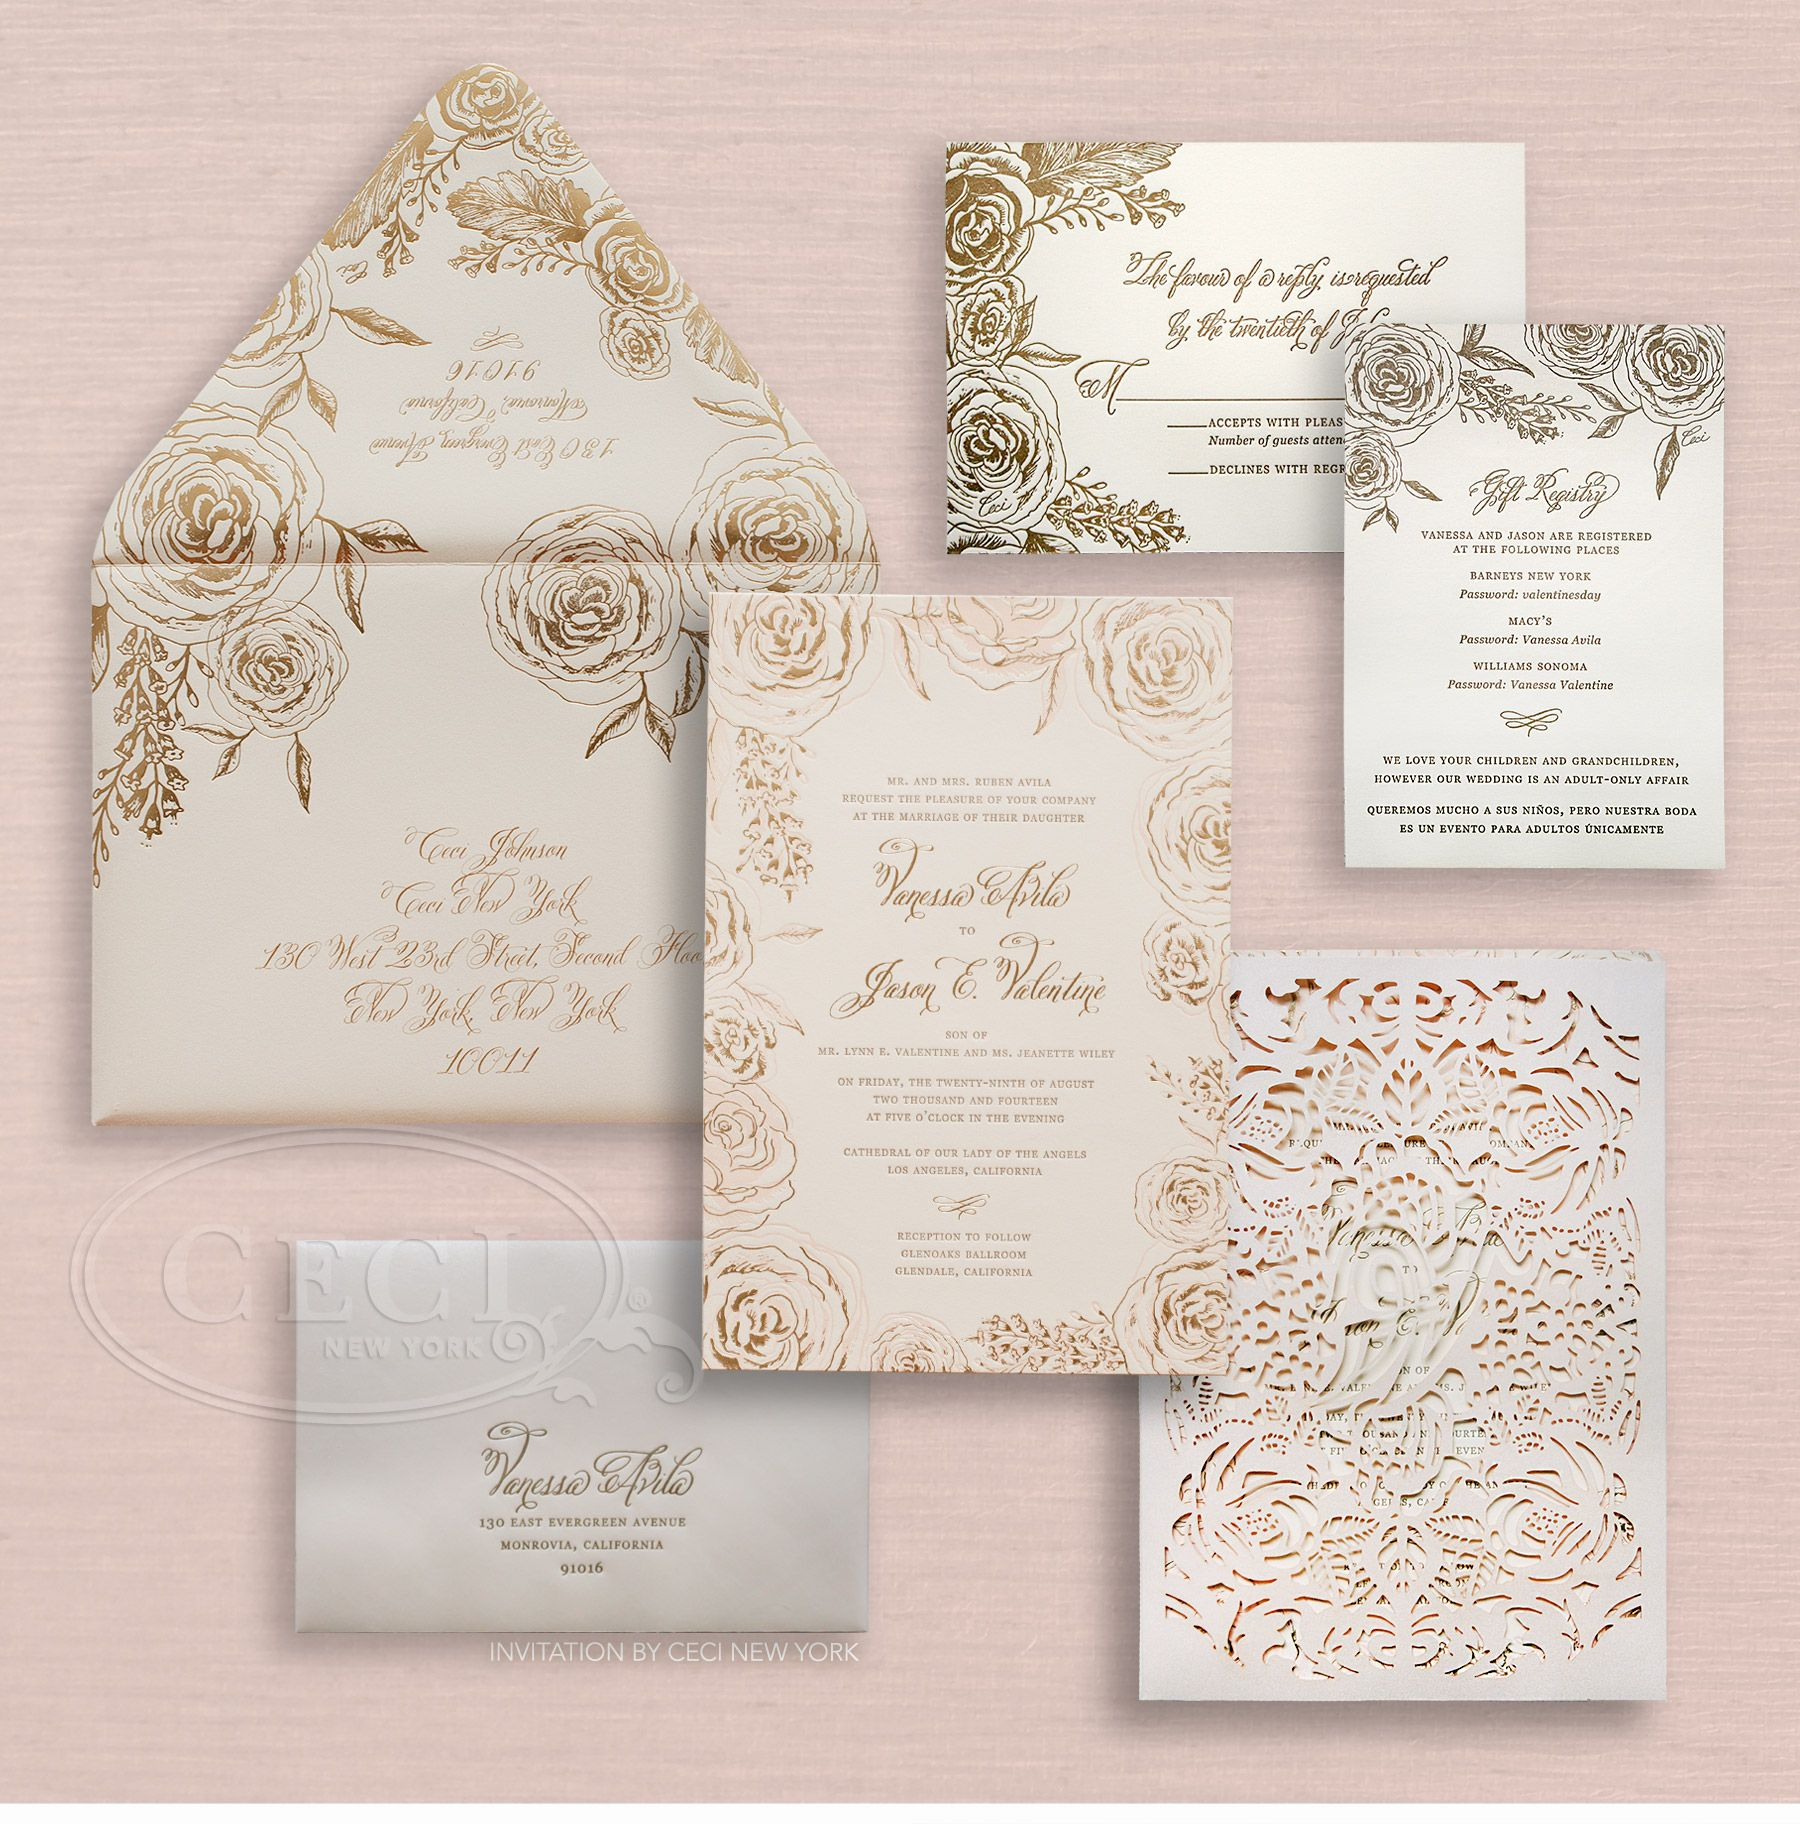 Luxury Wedding Invitations Online: Foil-pressed Rose Print On Outer Envelope [Luxury Wedding